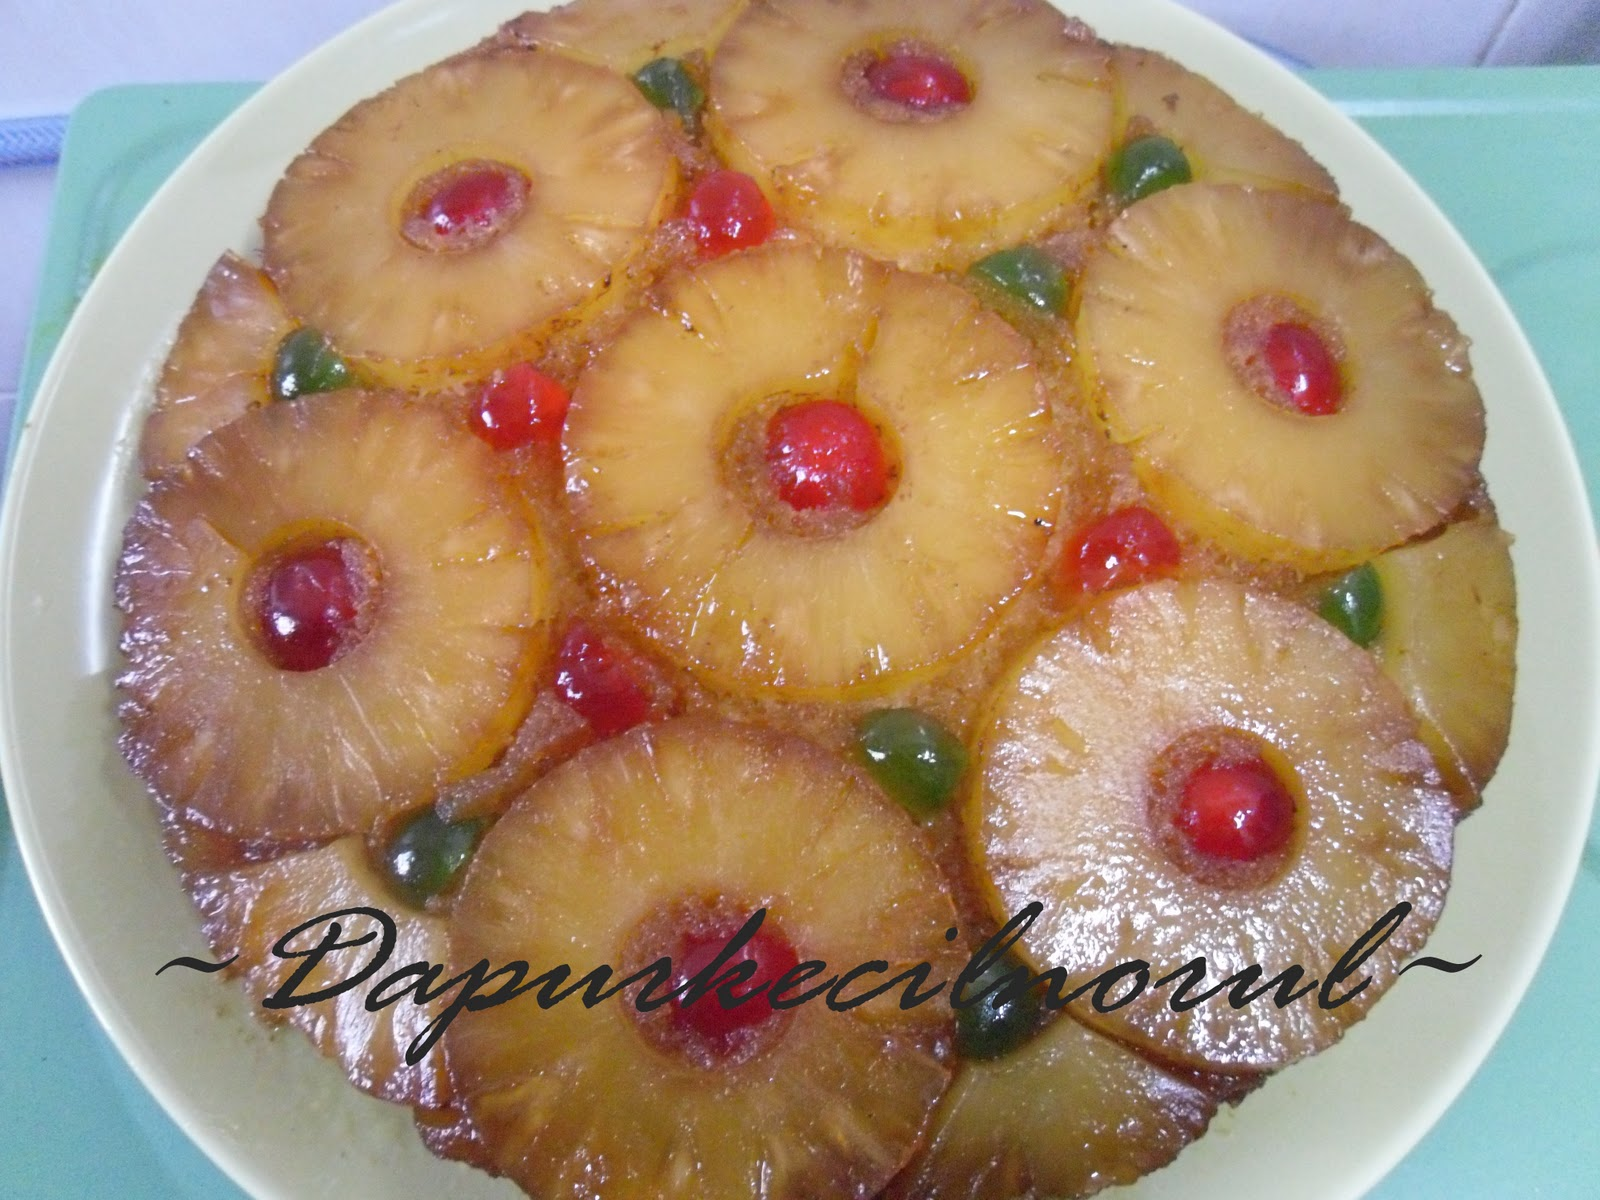 Dapur Kecil Norul: Pineapple Upside Down Cake